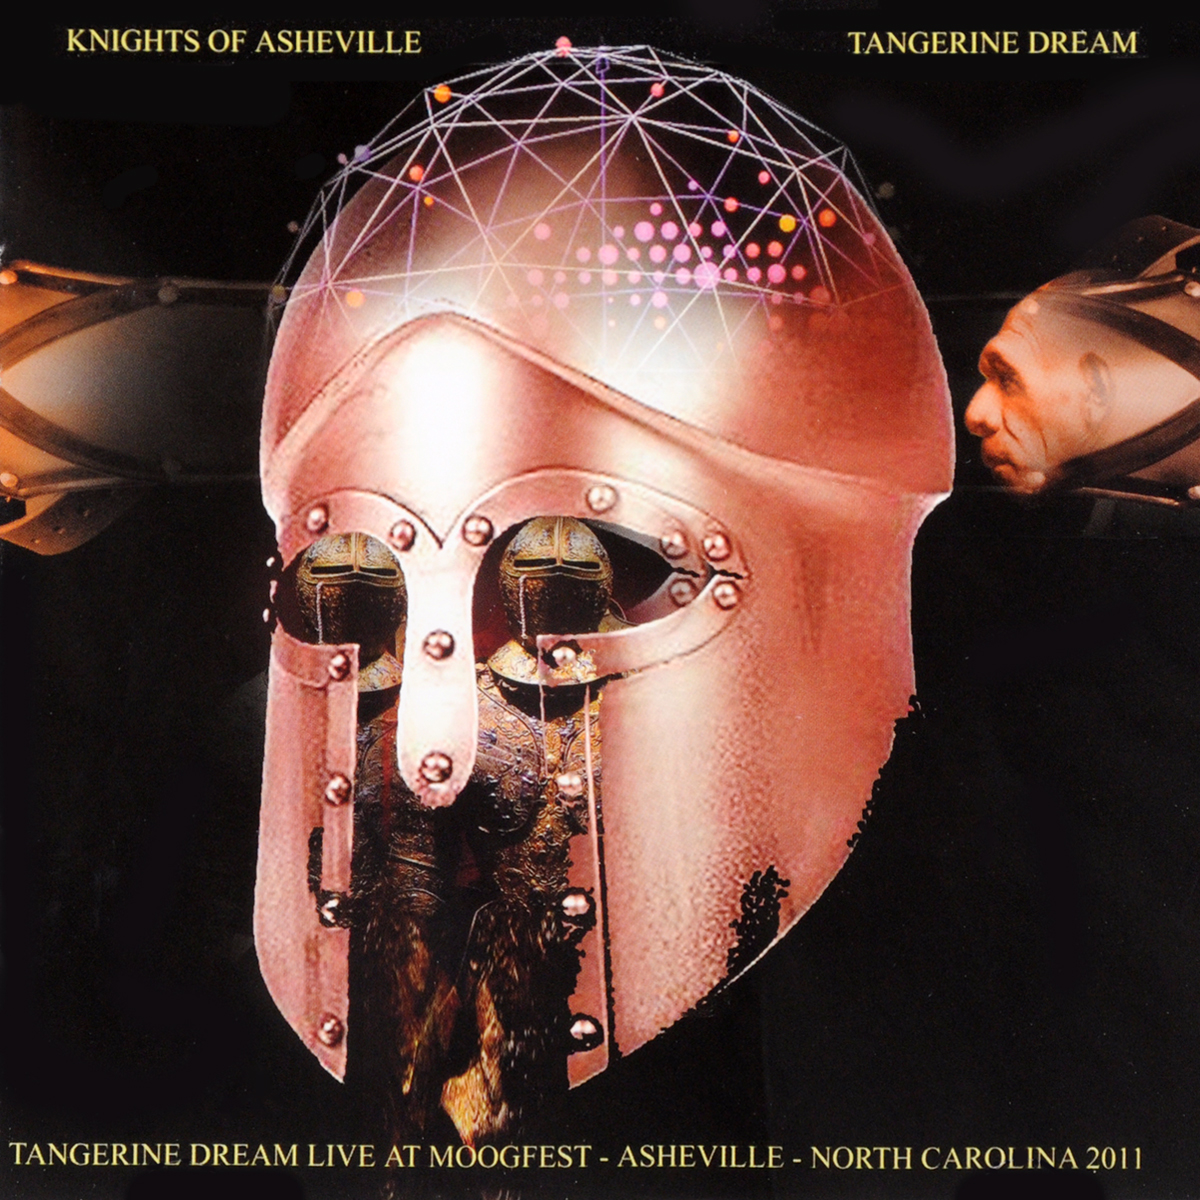 Tangerine Dream. Knights Of Asheville - Tangerine Dream Live At The Moogfest In Asheville 2011 (2 CD)